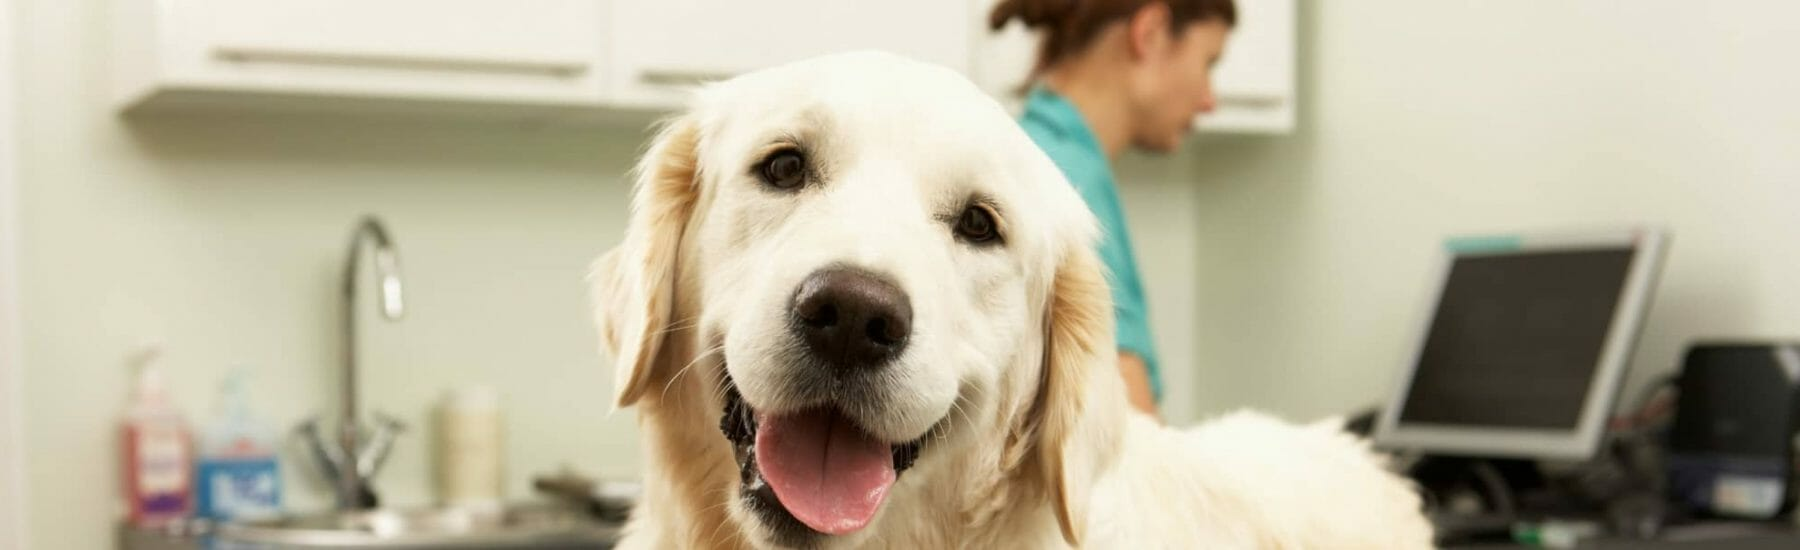 Golden retriever smiling at the camera in a vet clinic